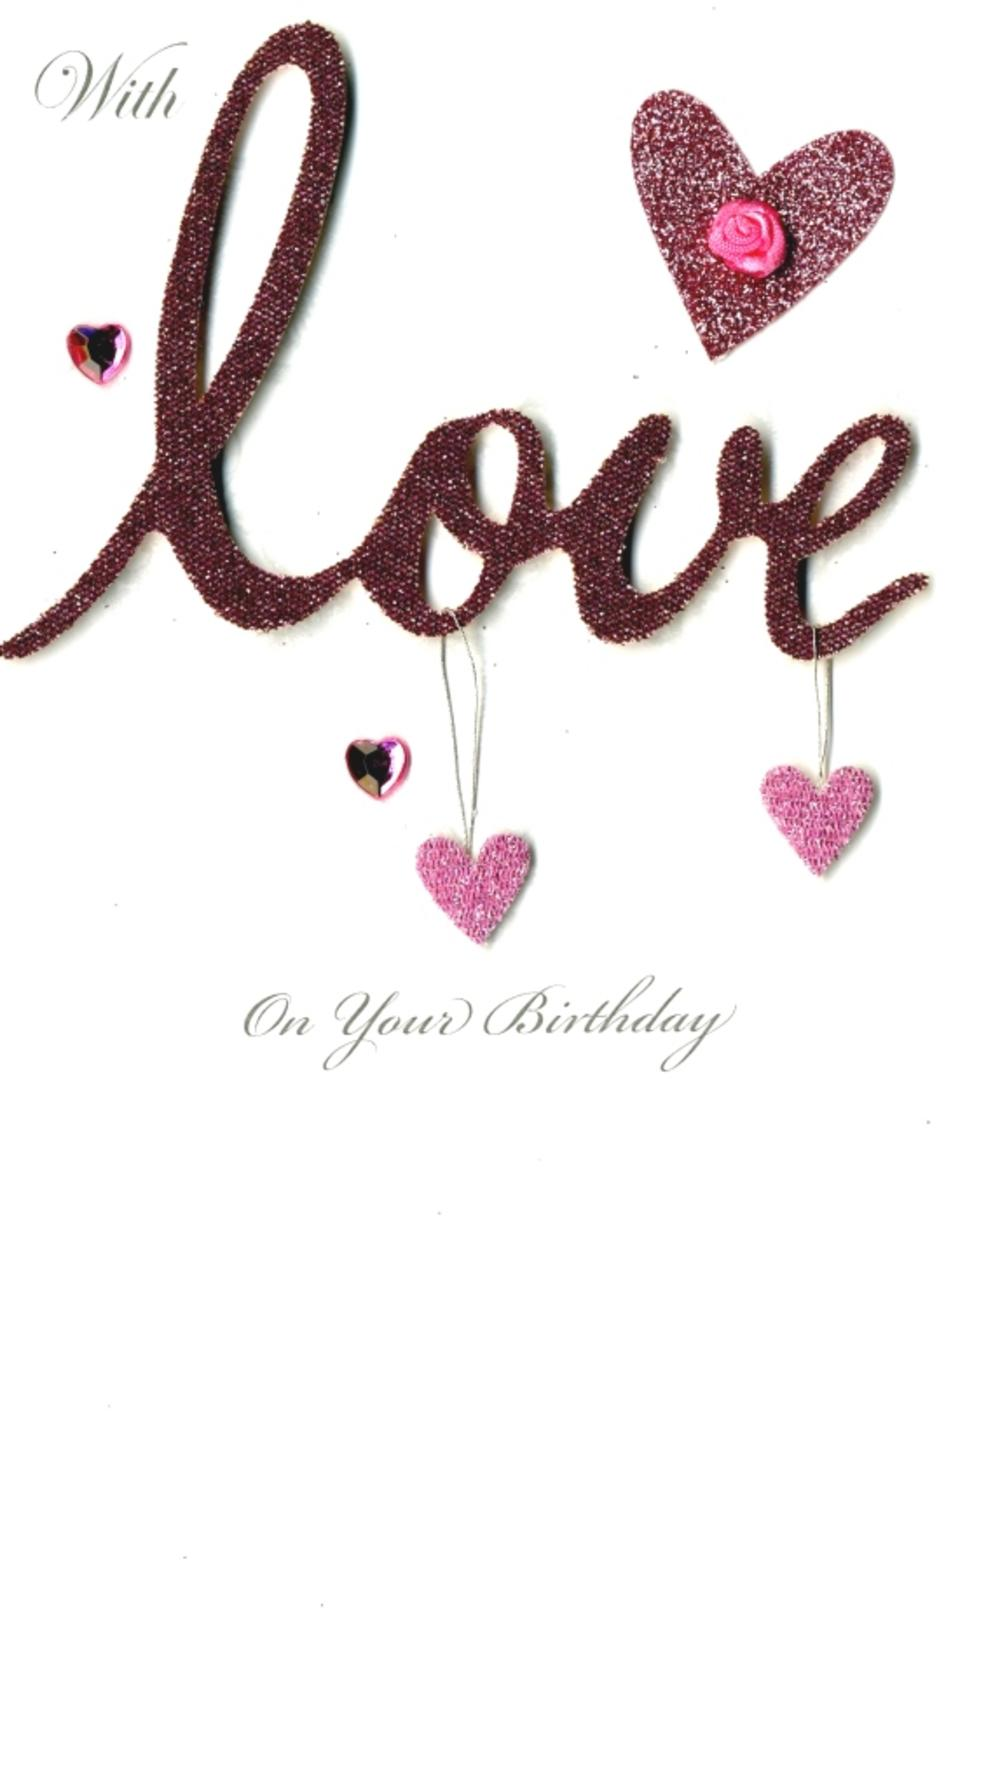 With Love Happy Birthday Greeting Card